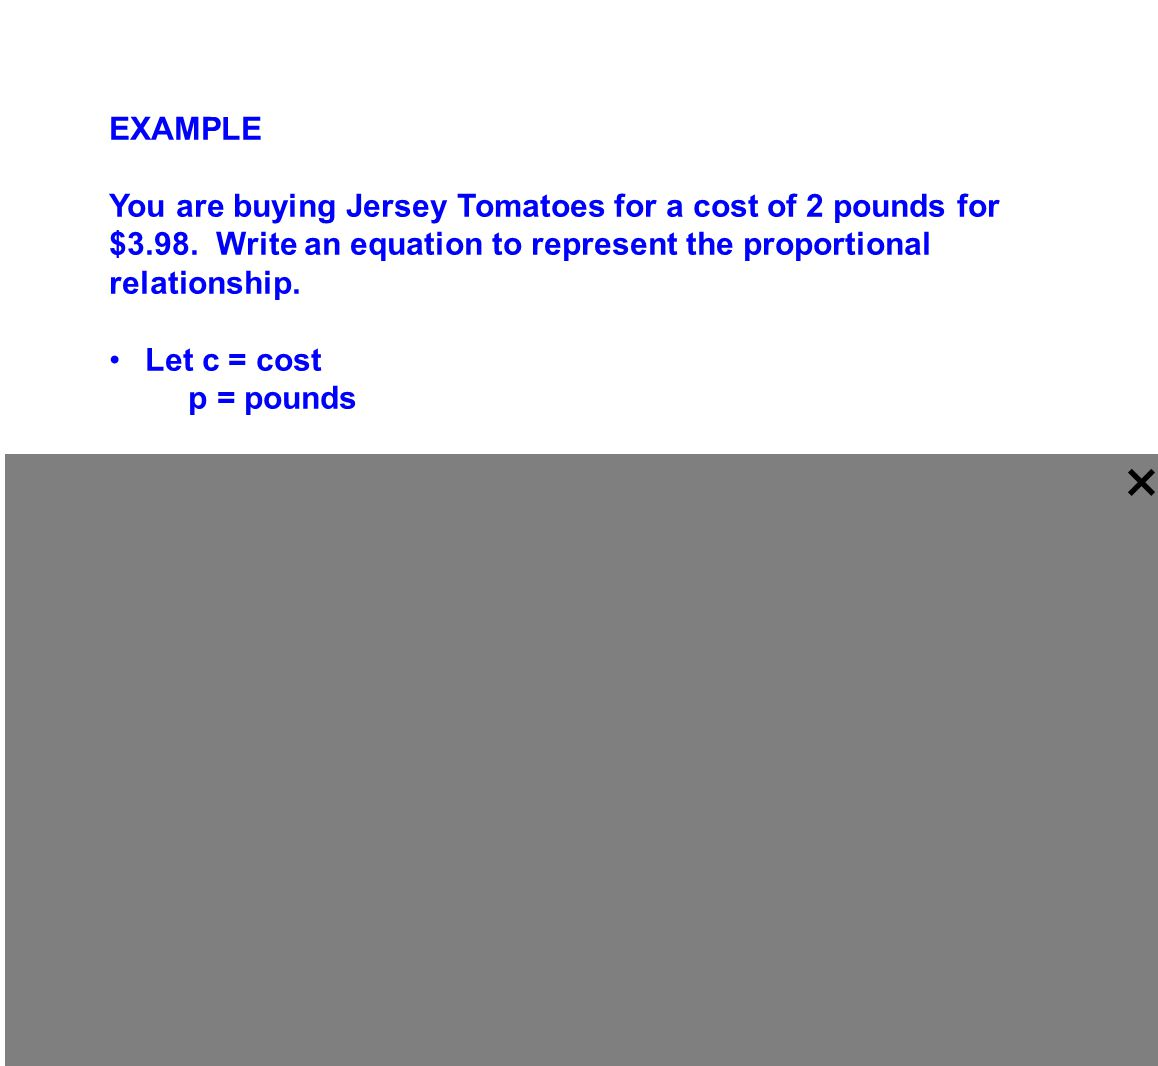 EXAMPLE You are buying Jersey Tomatoes for a cost of 2 pounds for $3.98. Write an equation to represent the proportional relationship.